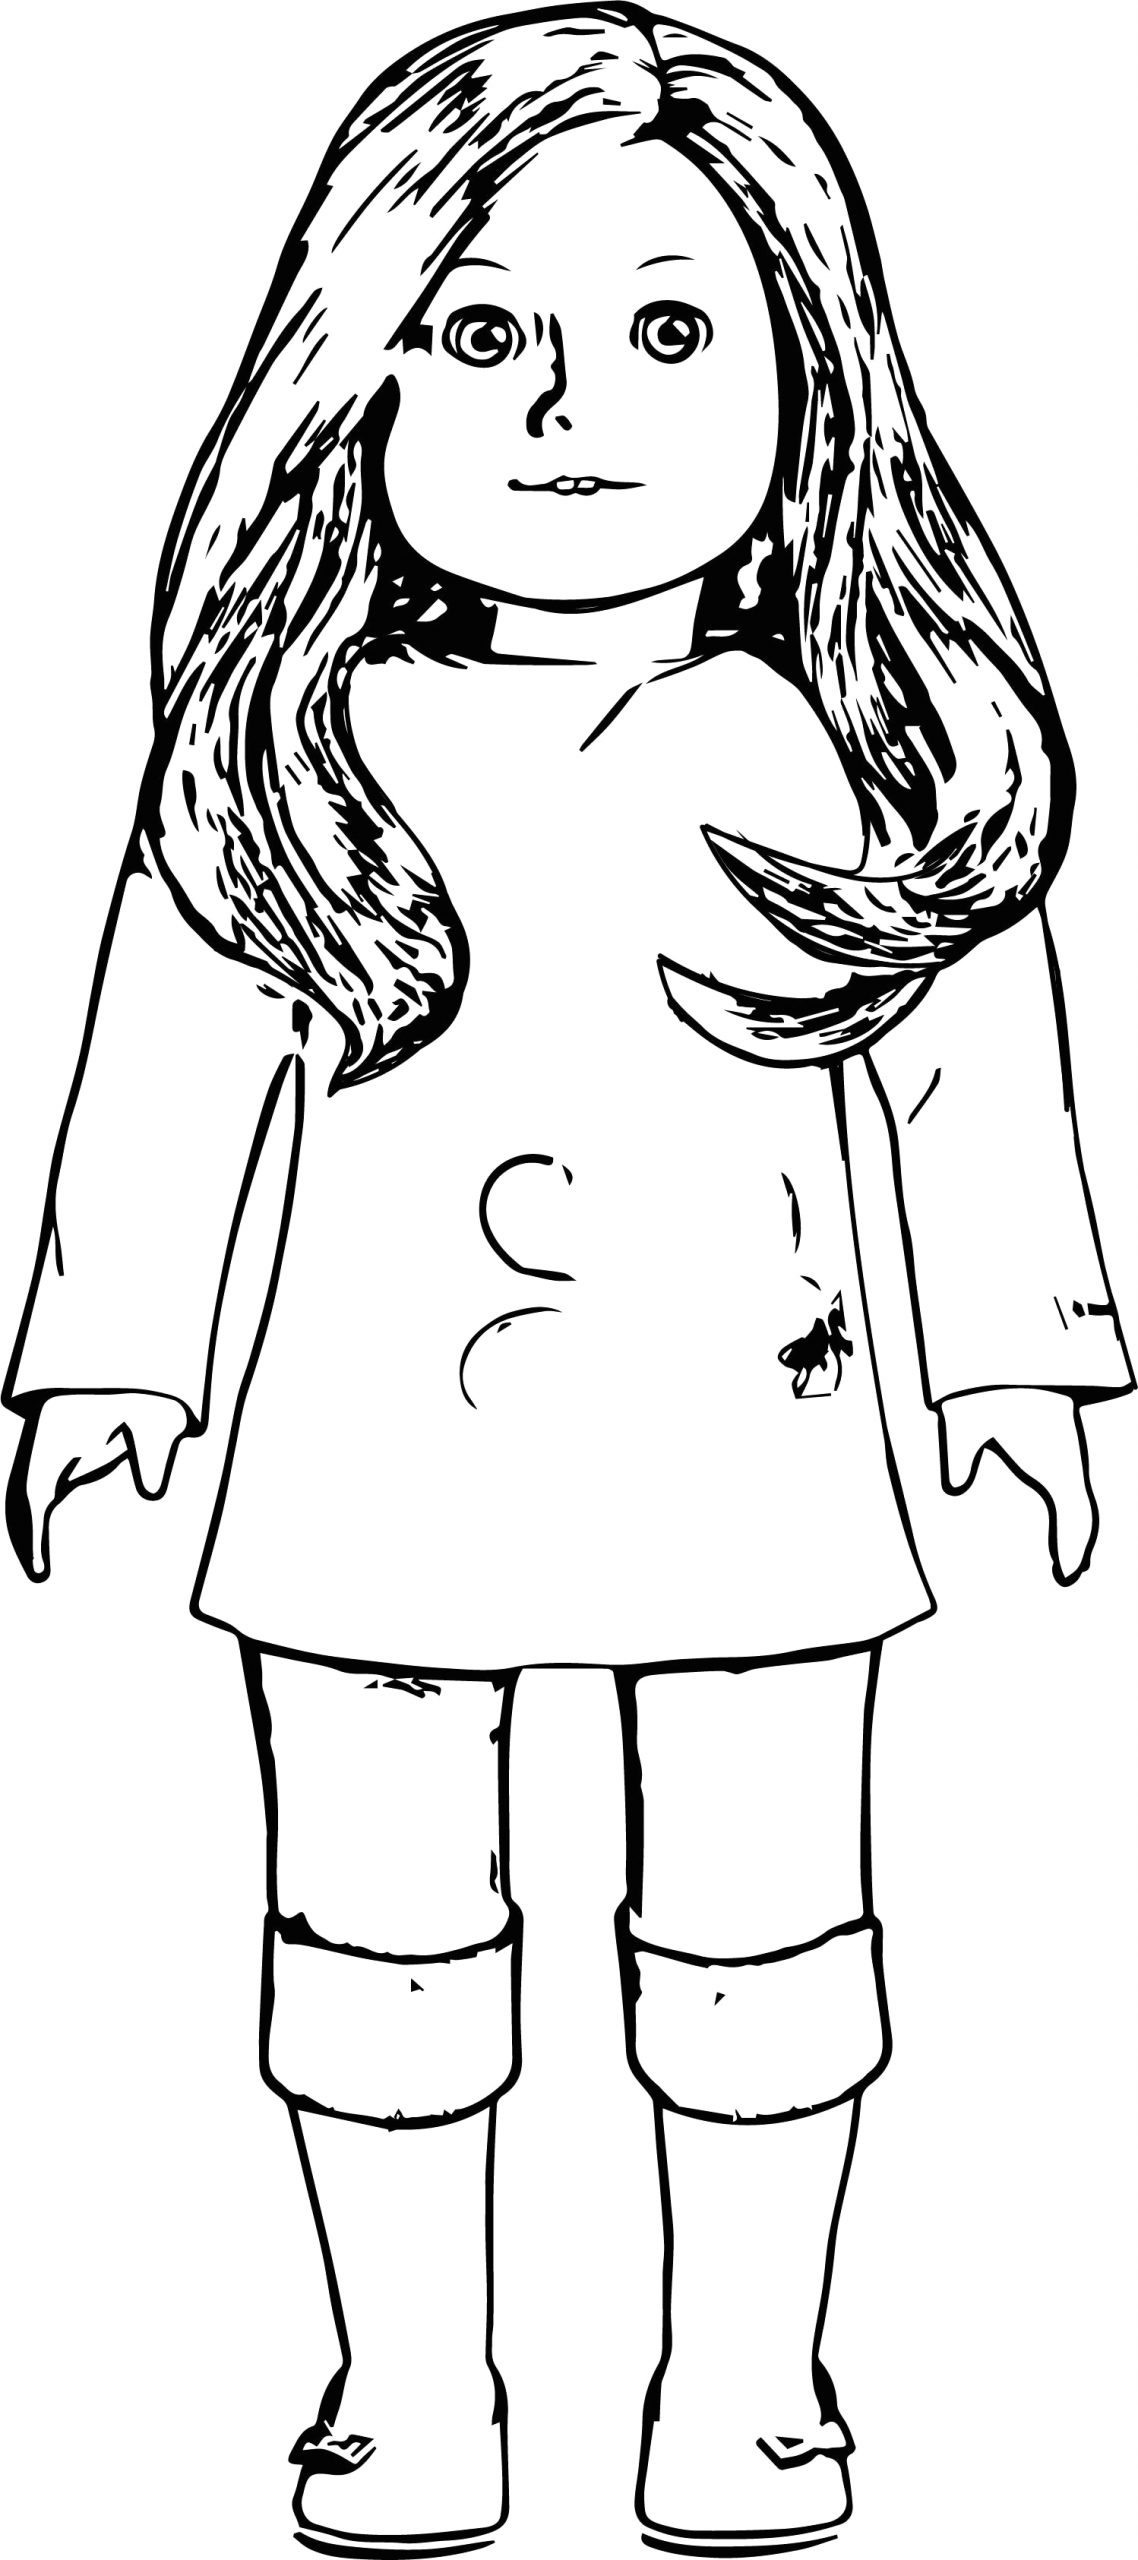 Free Printable American Girl Doll Coloring Pages American Girl Coloring Pages Best Coloring Pages for Kids